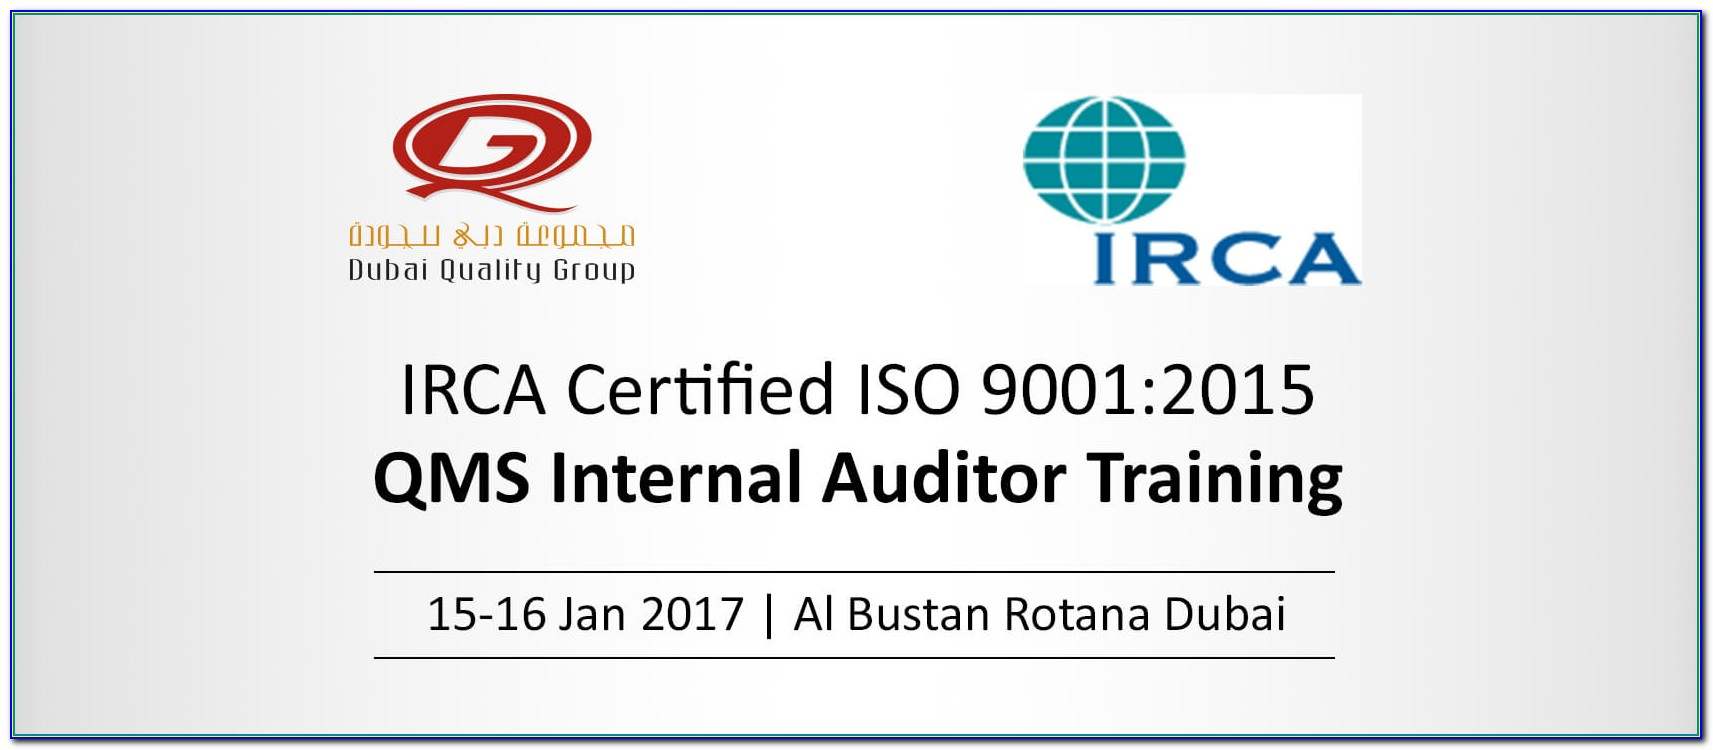 Iso 9001 Internal Auditor Course Online